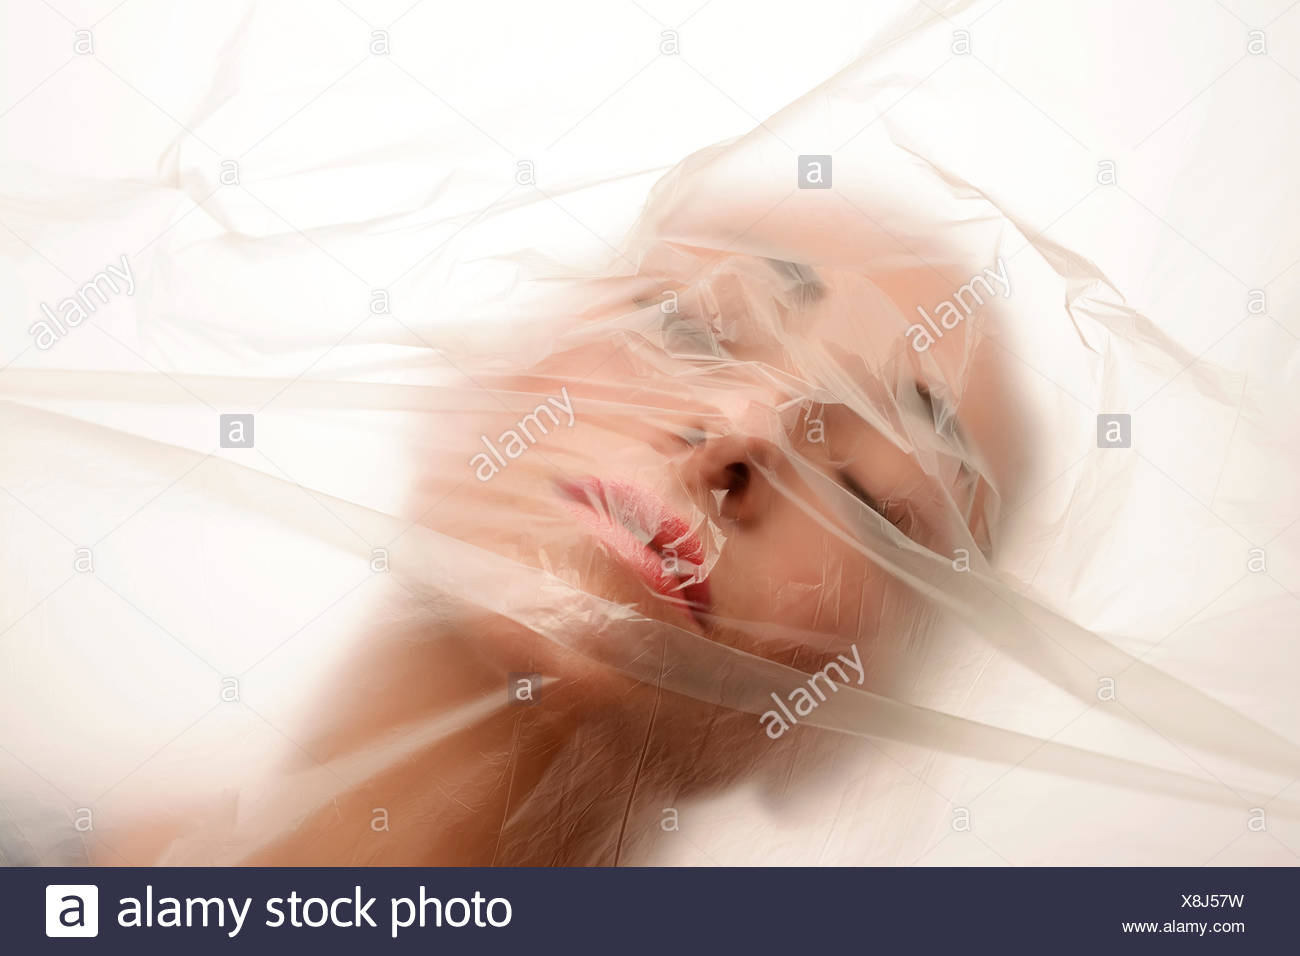 Face of young woman behind foil - Stock Image